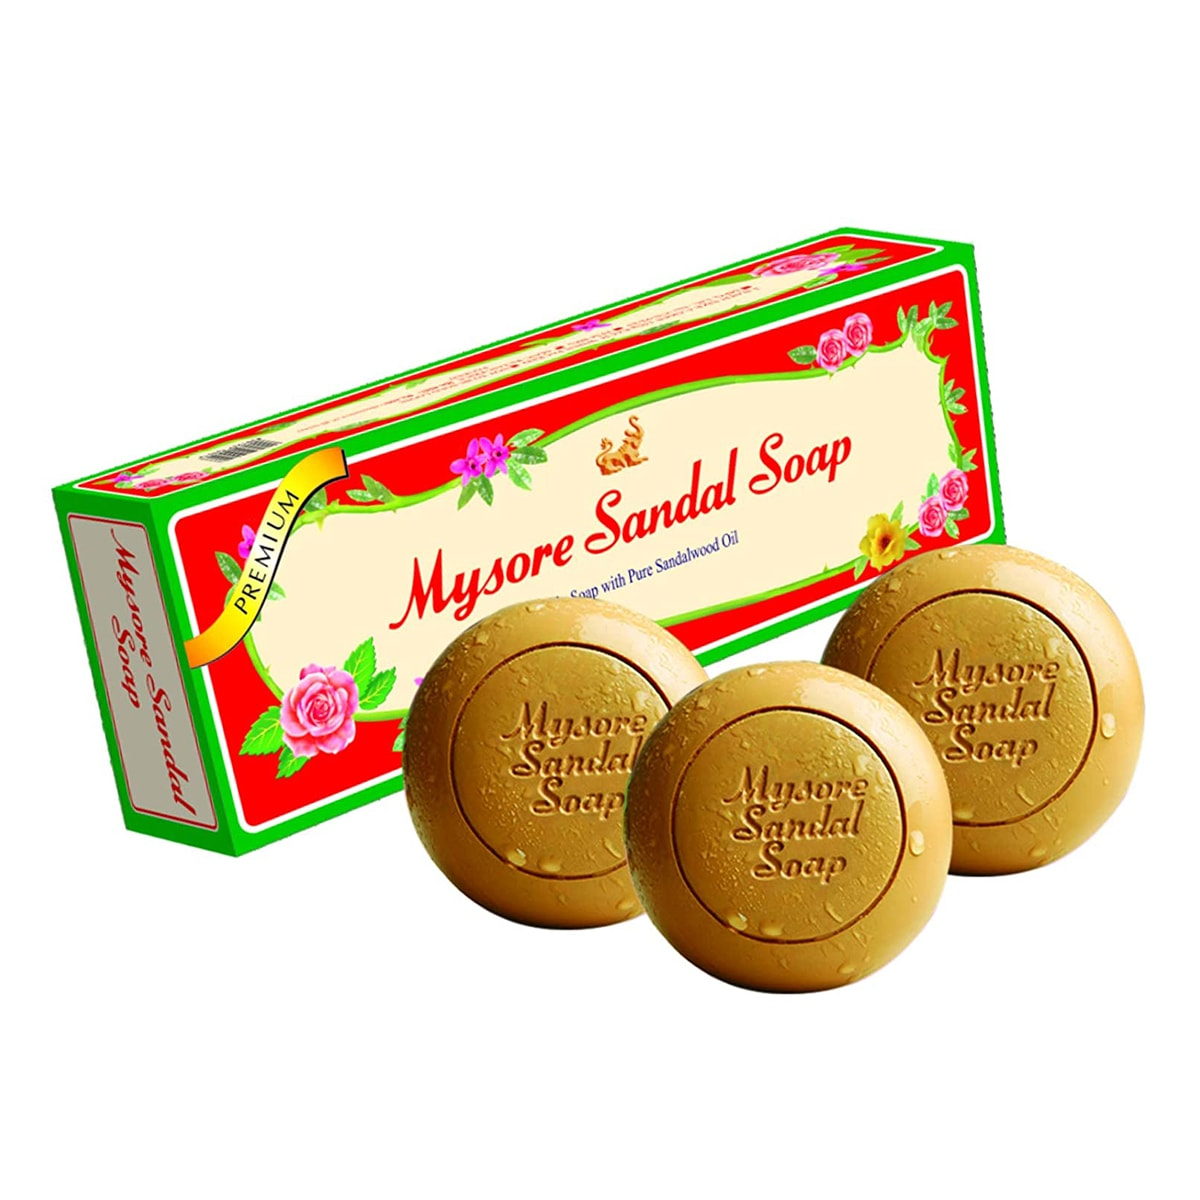 Buy Mysore Sandal Soap Gift Pack of 3 with Pure Sandalwood Oil - 450 gm